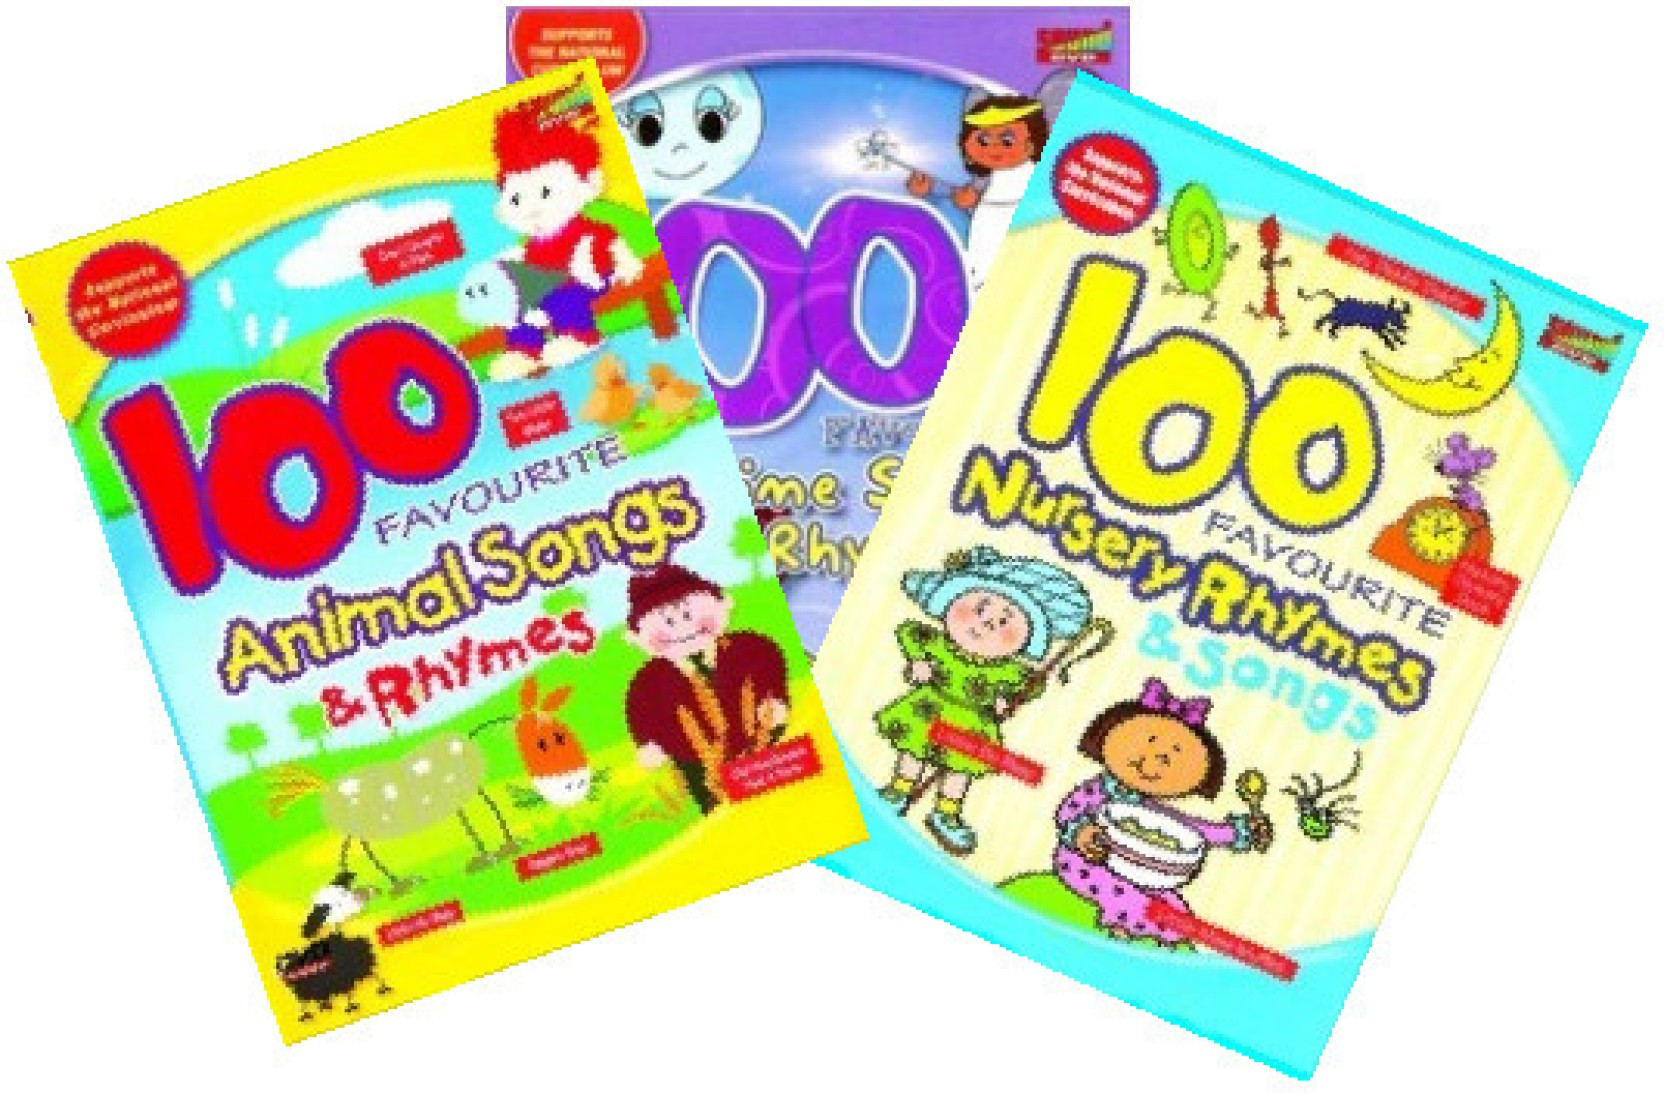 100 Favourite Nursery Rhymes and Songs - Pinterest